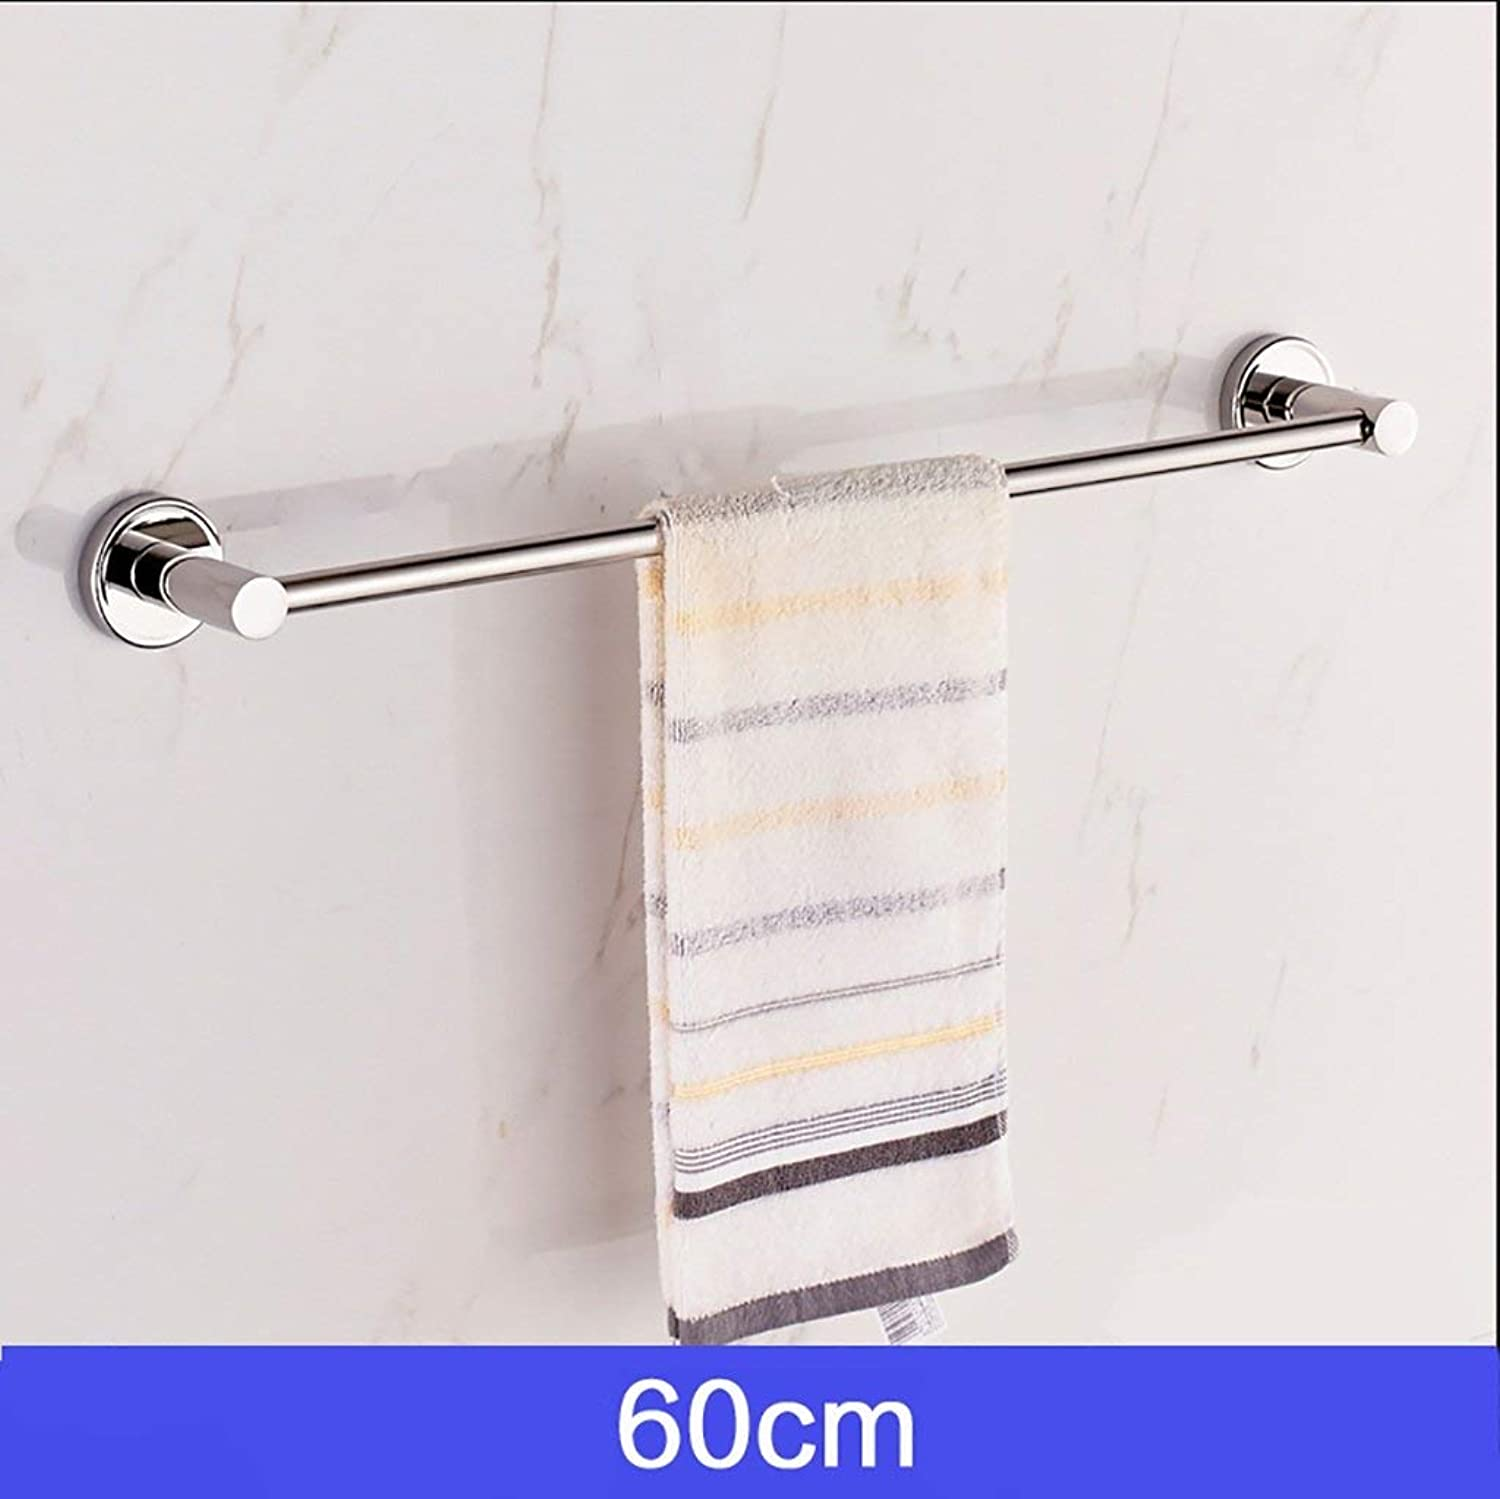 Towel Rack Stainless Steel Bathroom Single Towel Rack Bathroom 304 Stainless Steel Towel Bar (Size   100cm8cm) Bathroom Towel Shelf (Size   60cm8 cm)